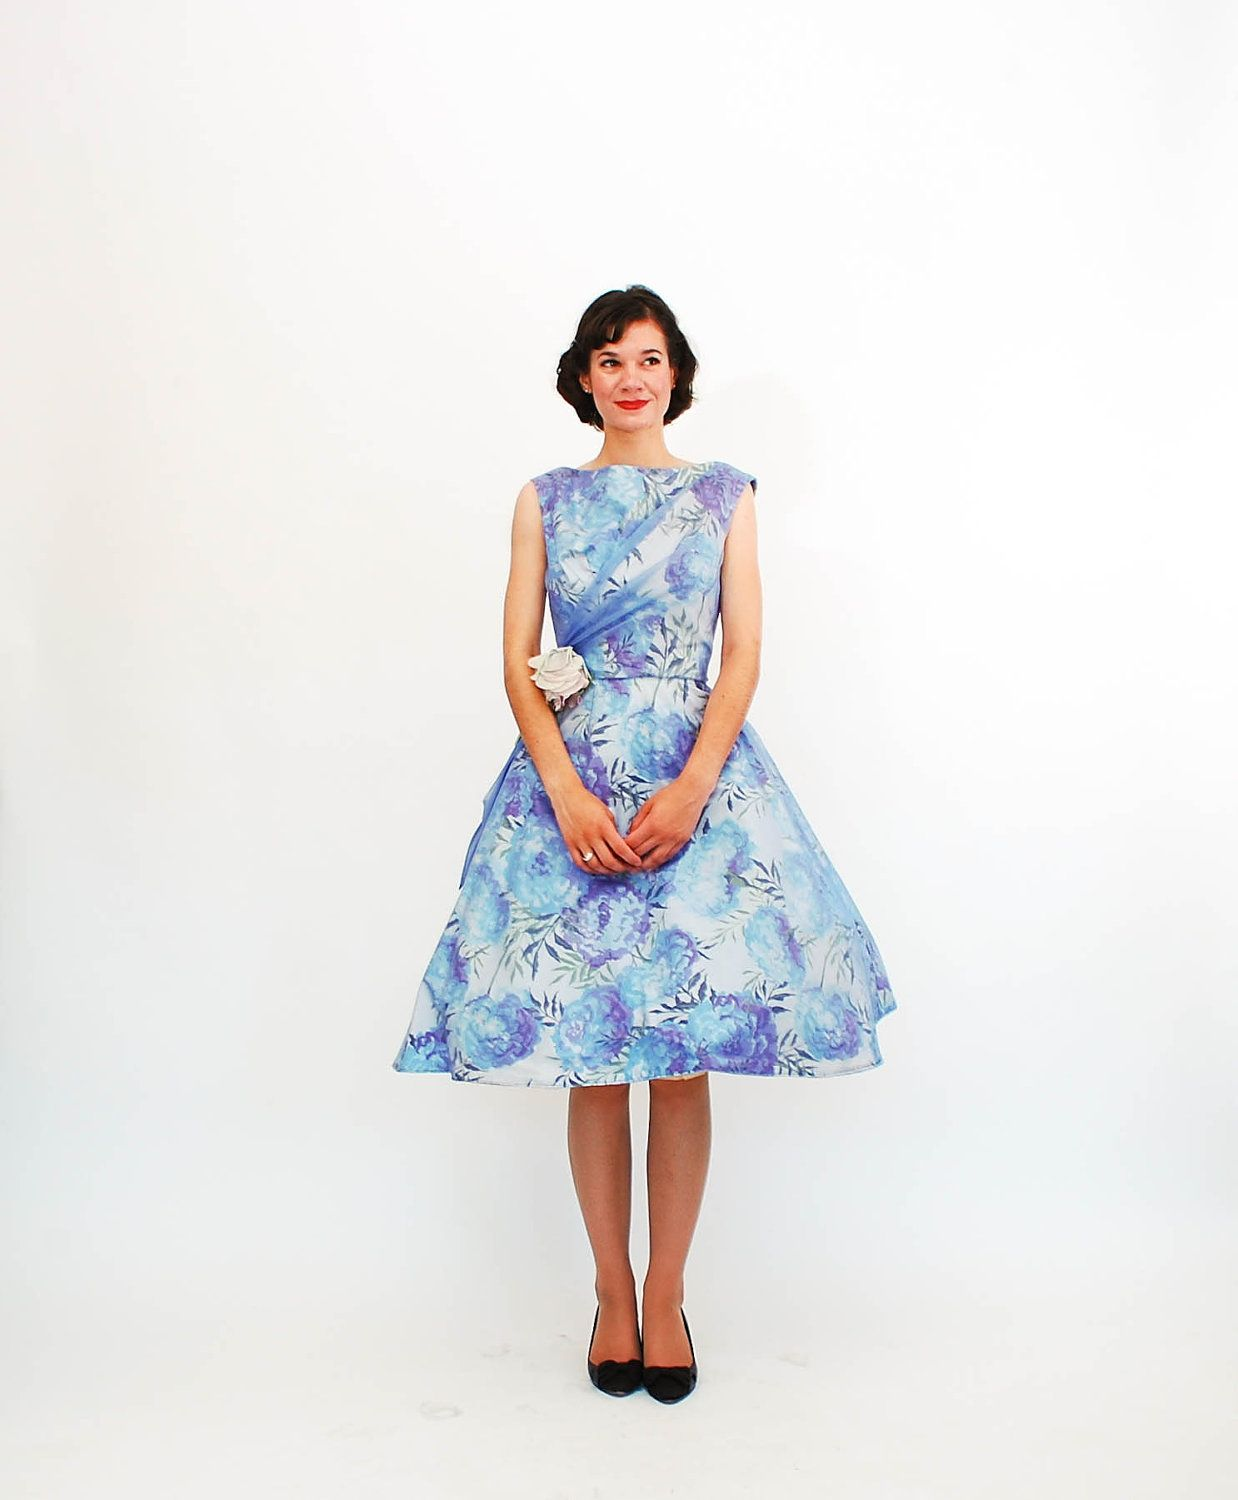 For The Party Girl Vintage 1960s Party Dress 60s Garden Party Dress Blue Hydrangea Floral Print Garden Party Dress Party Dress Blue Party Dress [ 1500 x 1238 Pixel ]